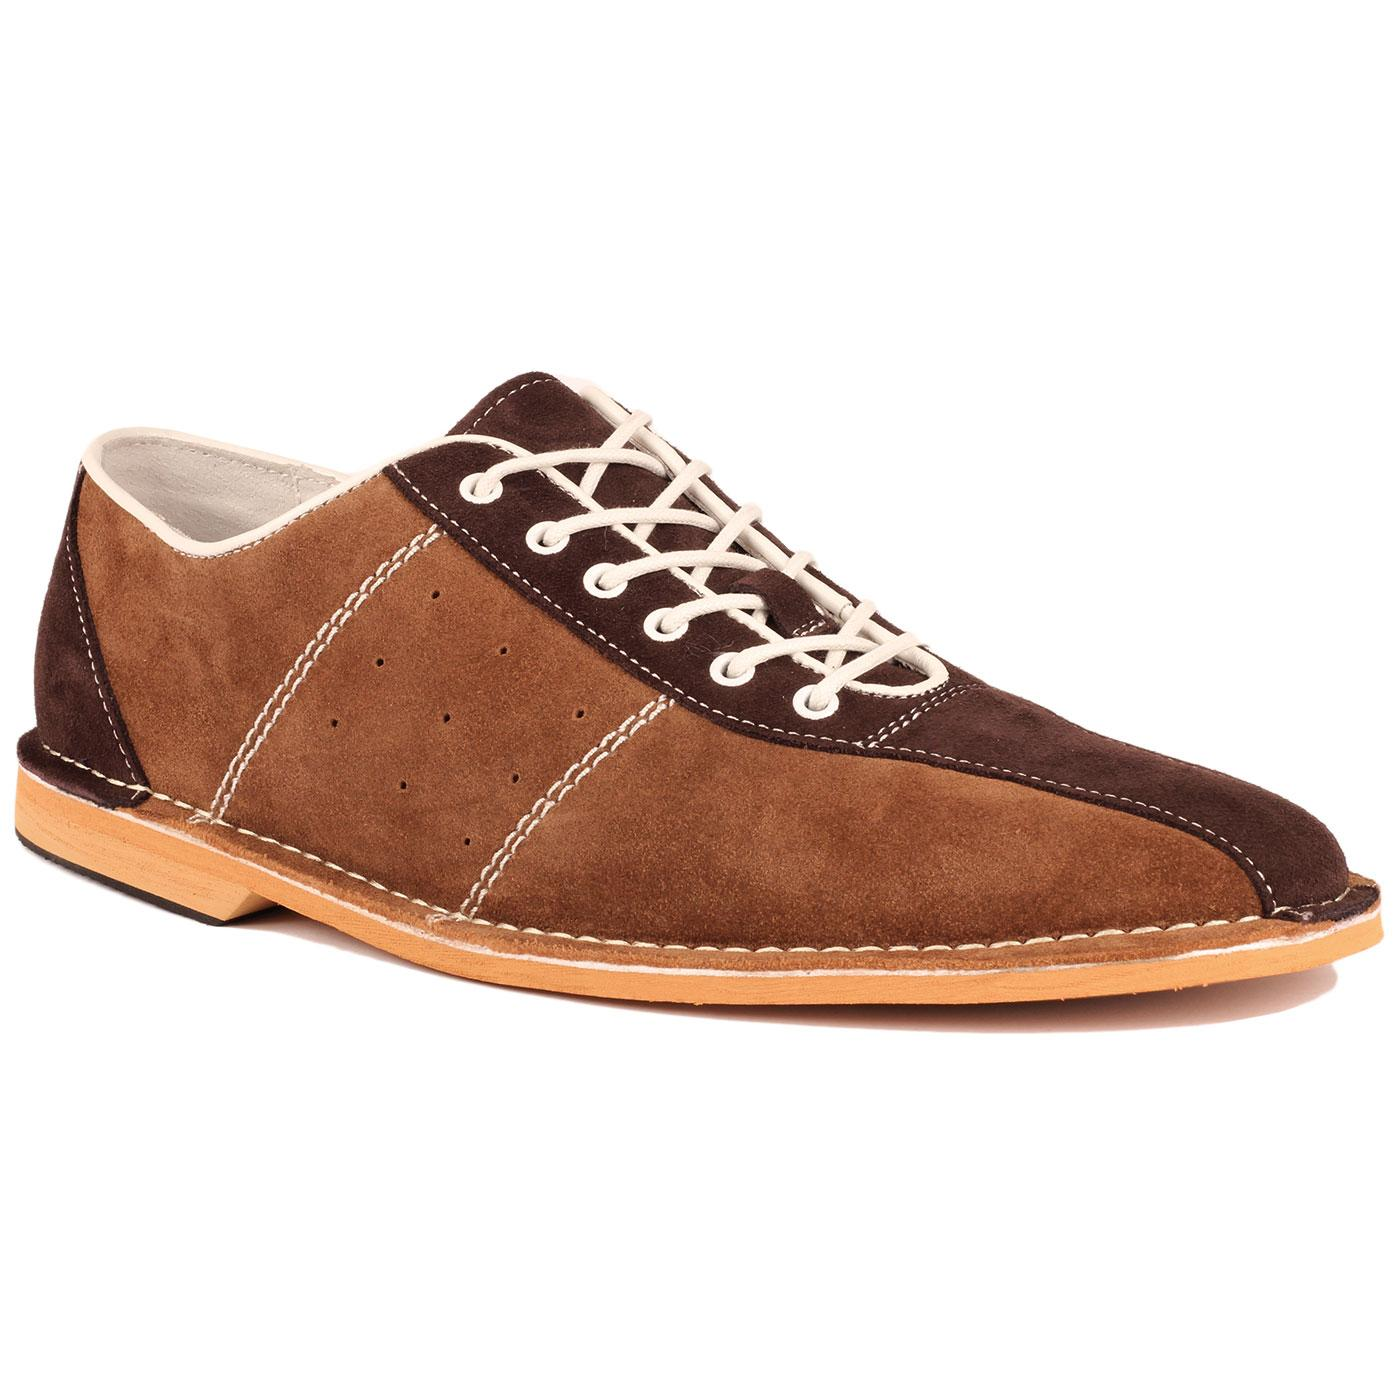 Madcap England Dude Men's Retro Mod Northern Soul Bowling Shoes in Tan Suede